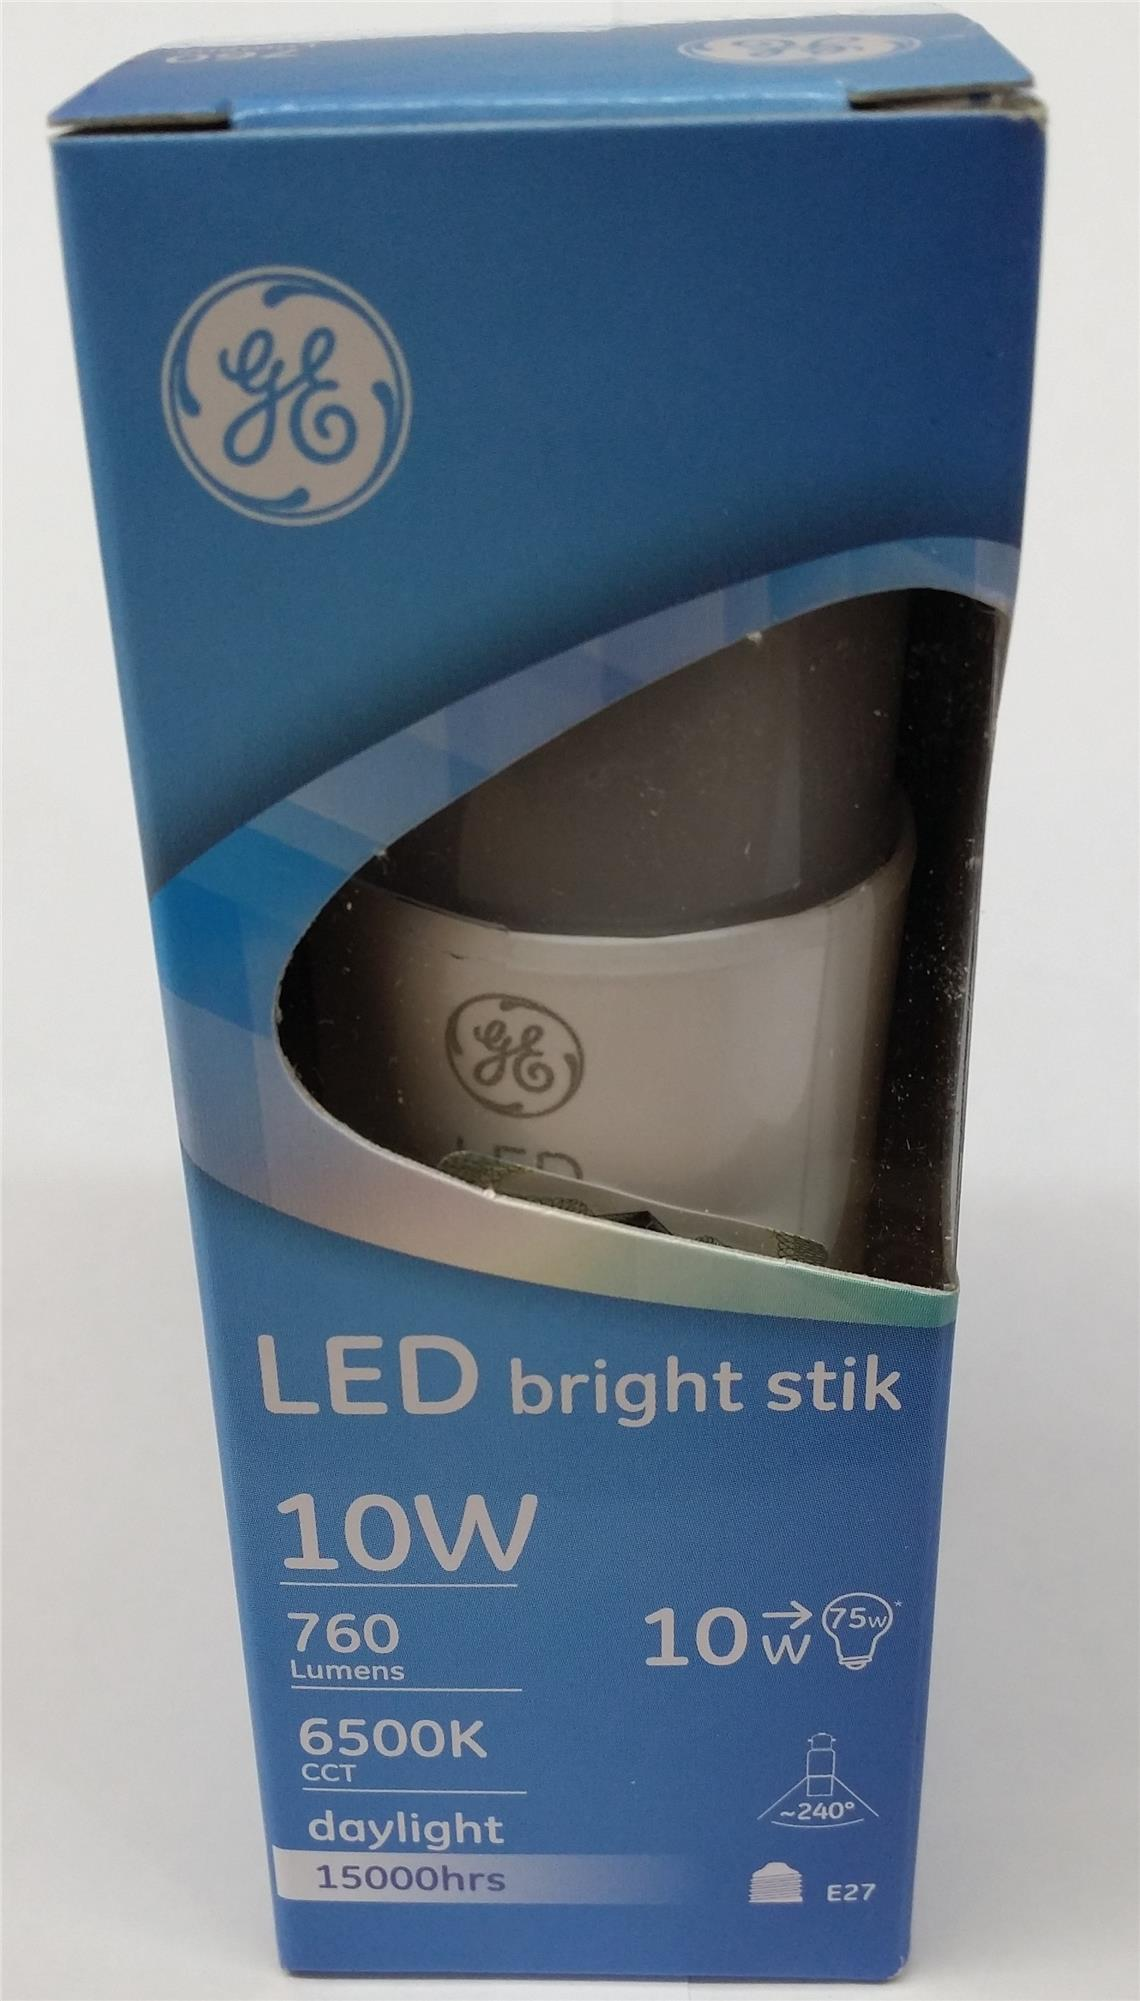 GE LED BRIGHT STIK E27 BULB 10W (6500K/3000K)